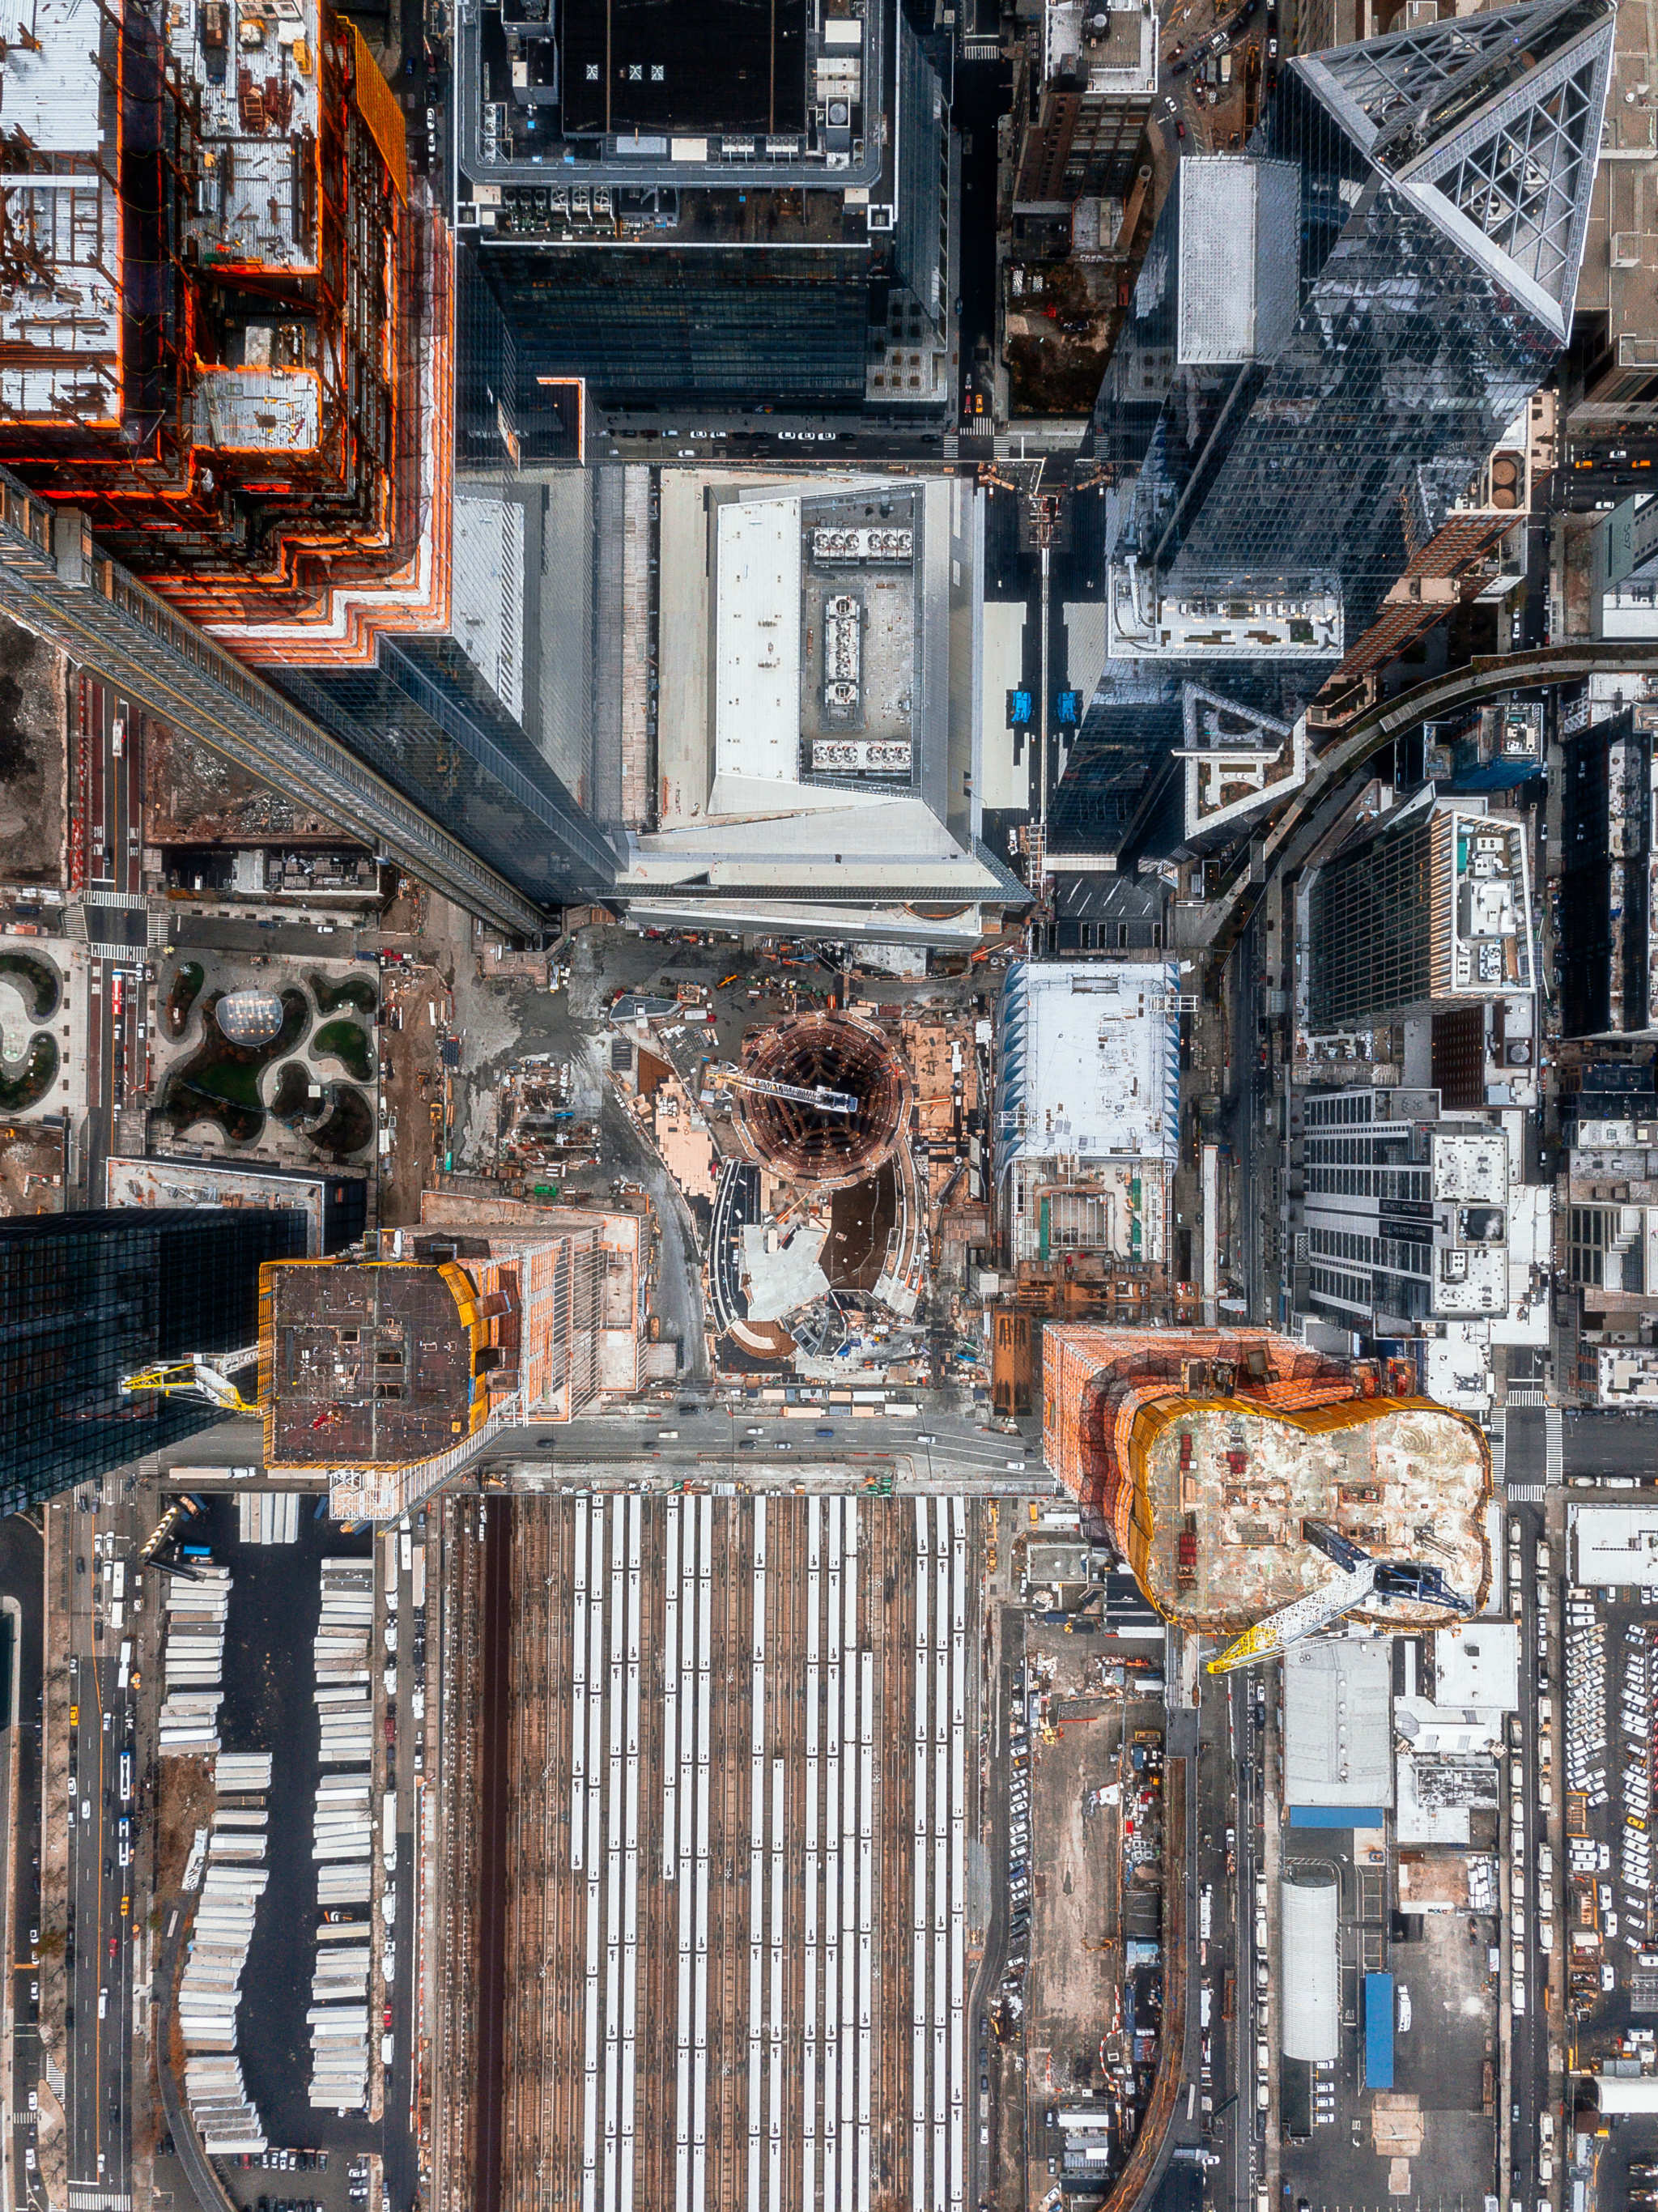 A self-taught photographer shoots new York from this perspective that his photos are making me dizzy